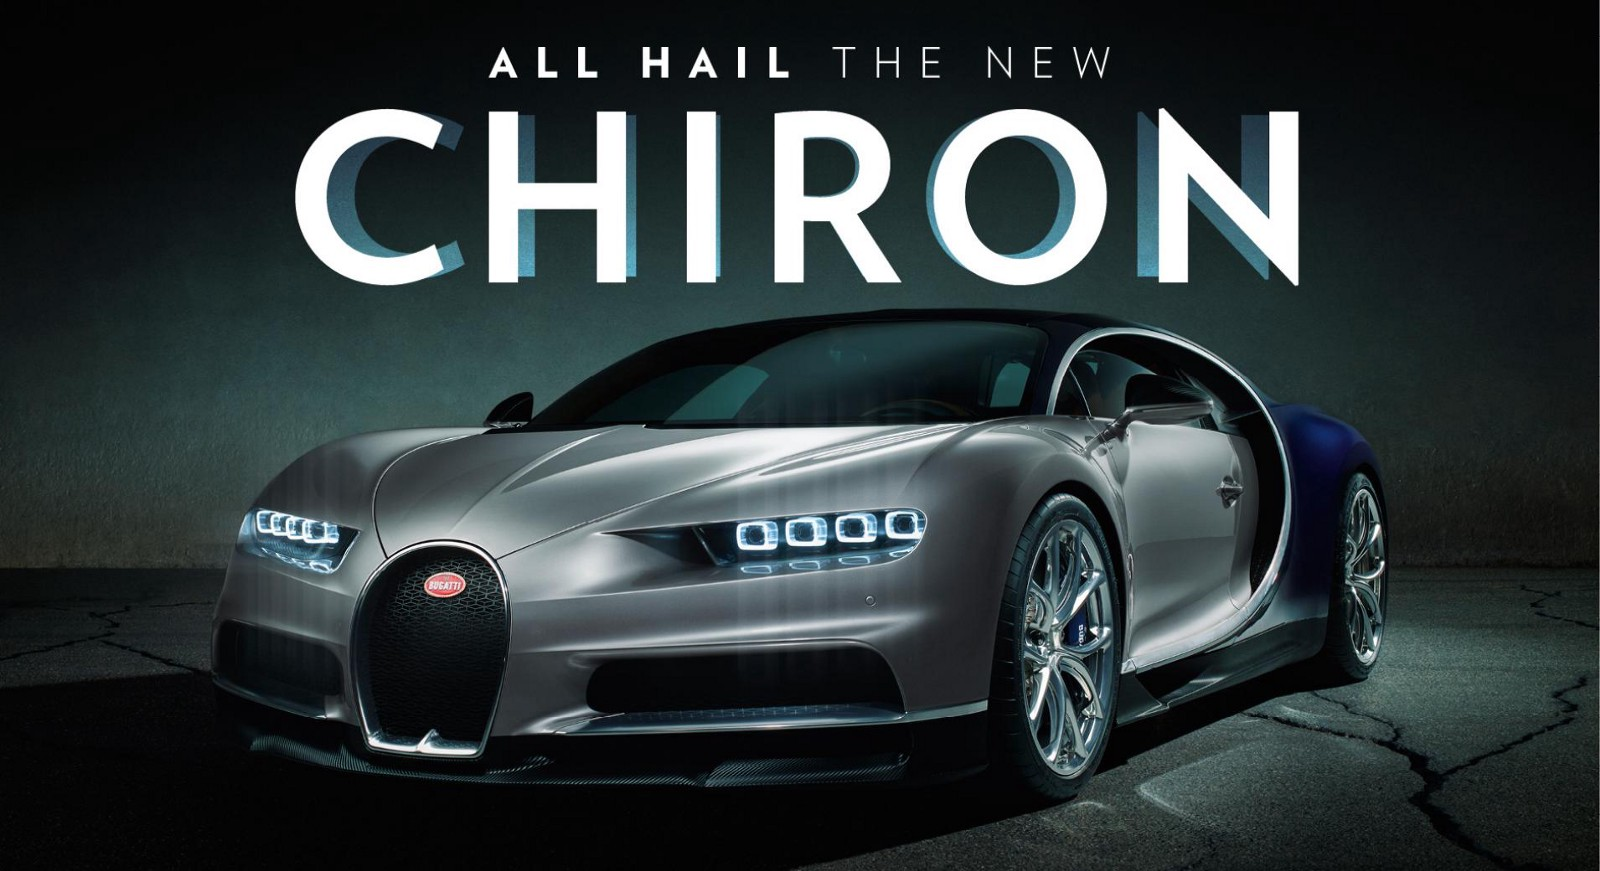 All Hail The New Chiron